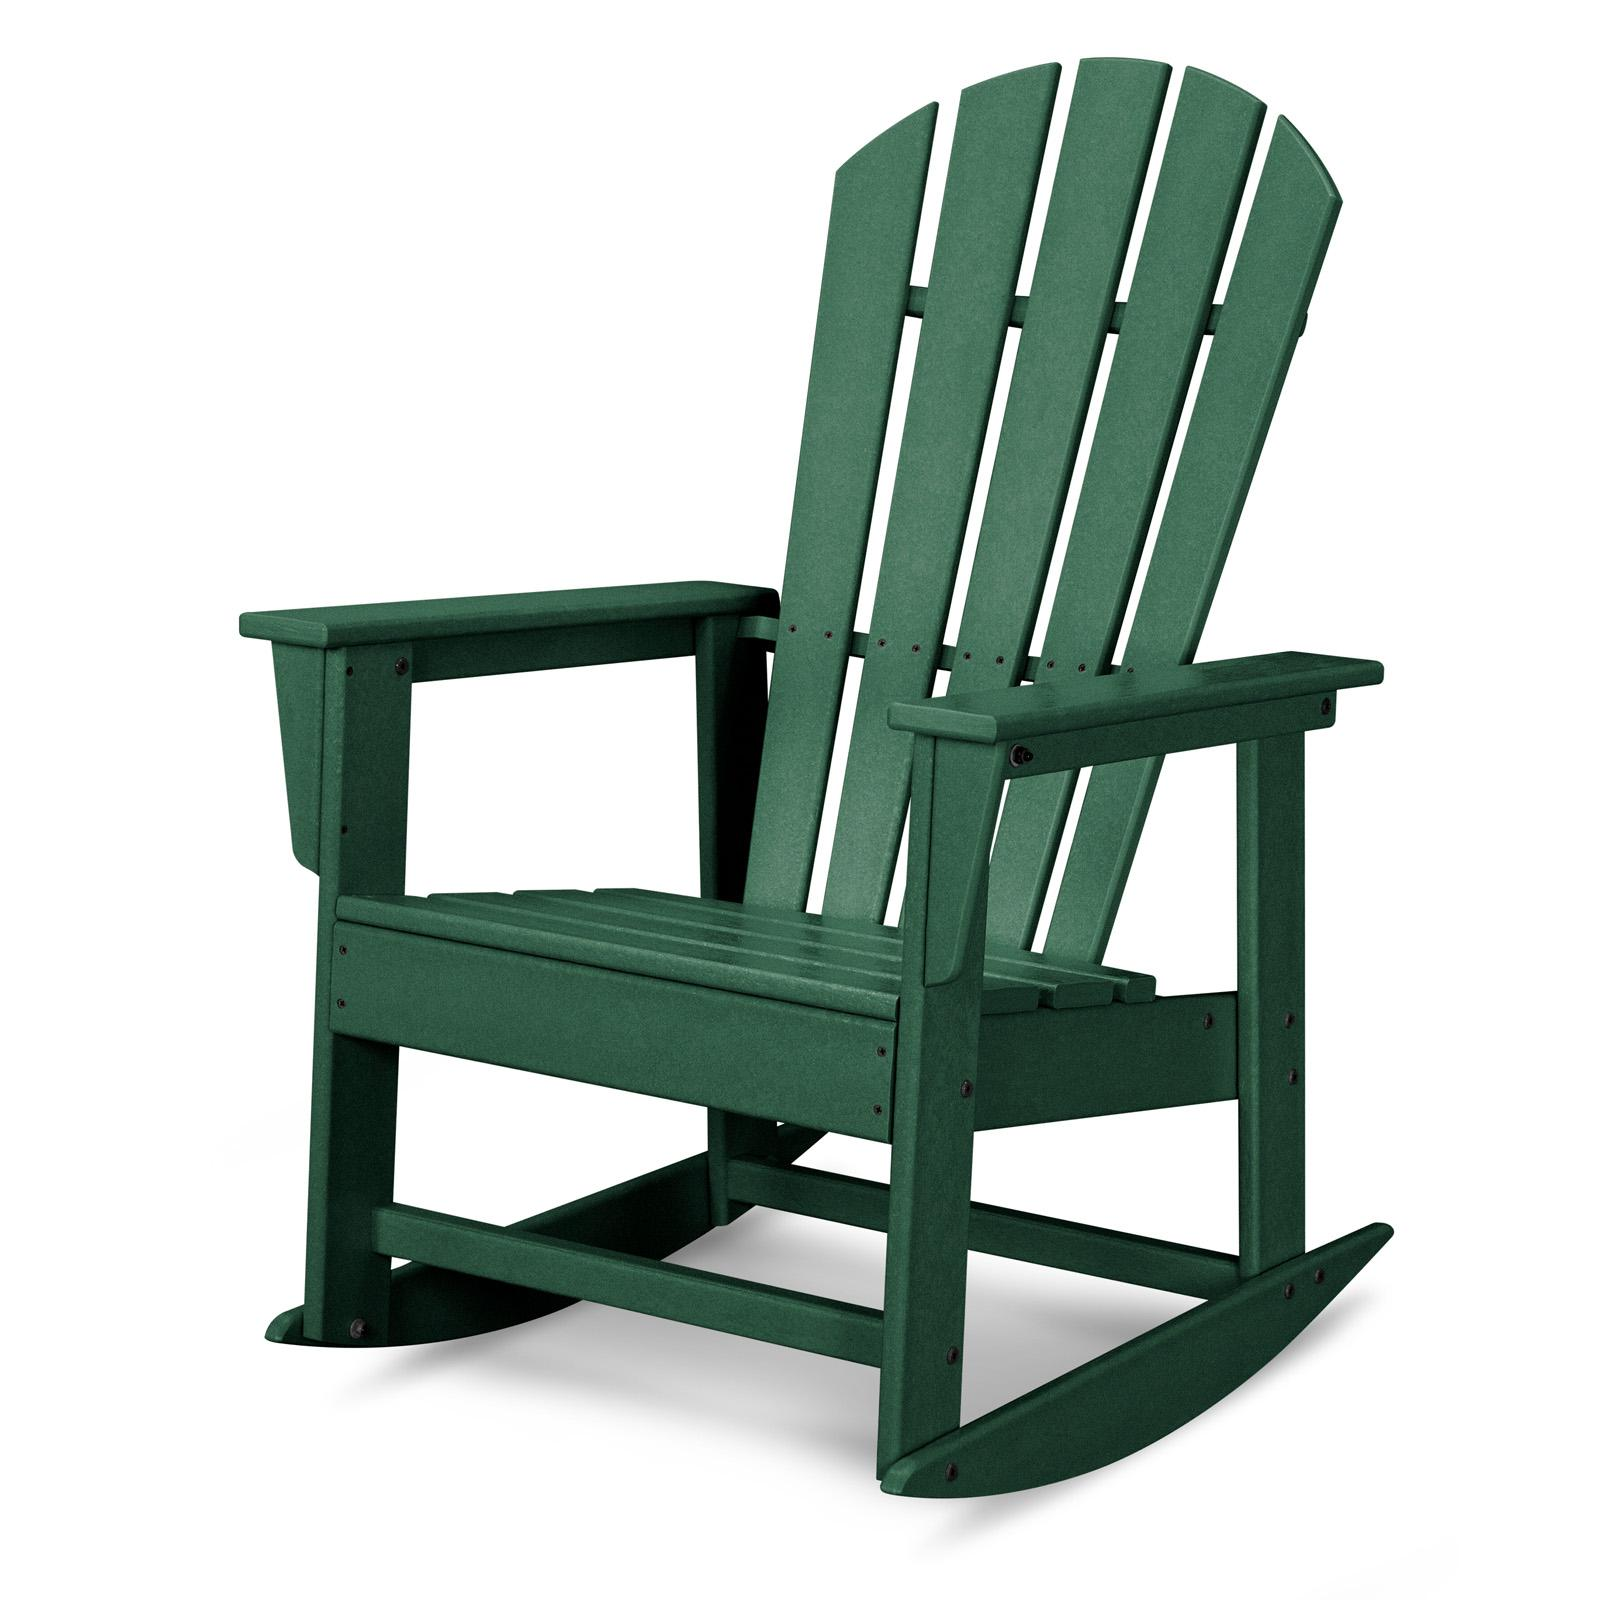 Outdoor POLYWOOD® South Beach Recycled Plastic Adirondack...